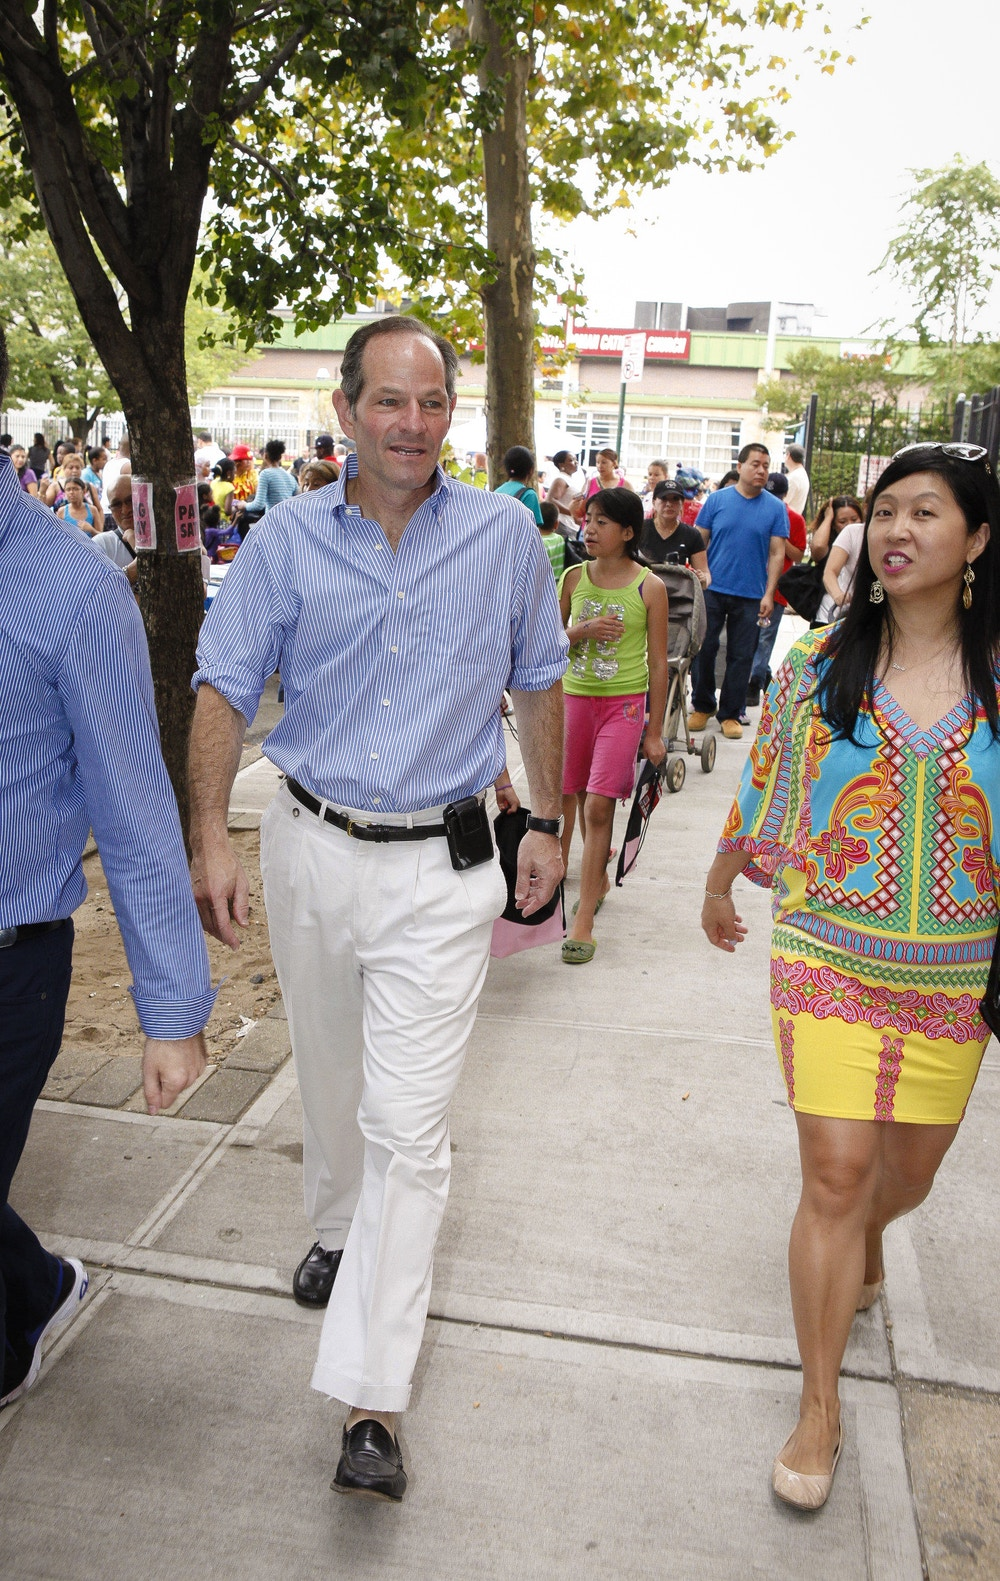 DDPJ9F Aug. 31, 2013 - Queens, New York, U.S - NYC Democratic candidate for Comptroller Eliot Spitzer, makes a brief campaign stop at a community event in the Corona section of Queens, NY. (Credit Image: © Angel Chevrestt/ZUMAPRESS.com)